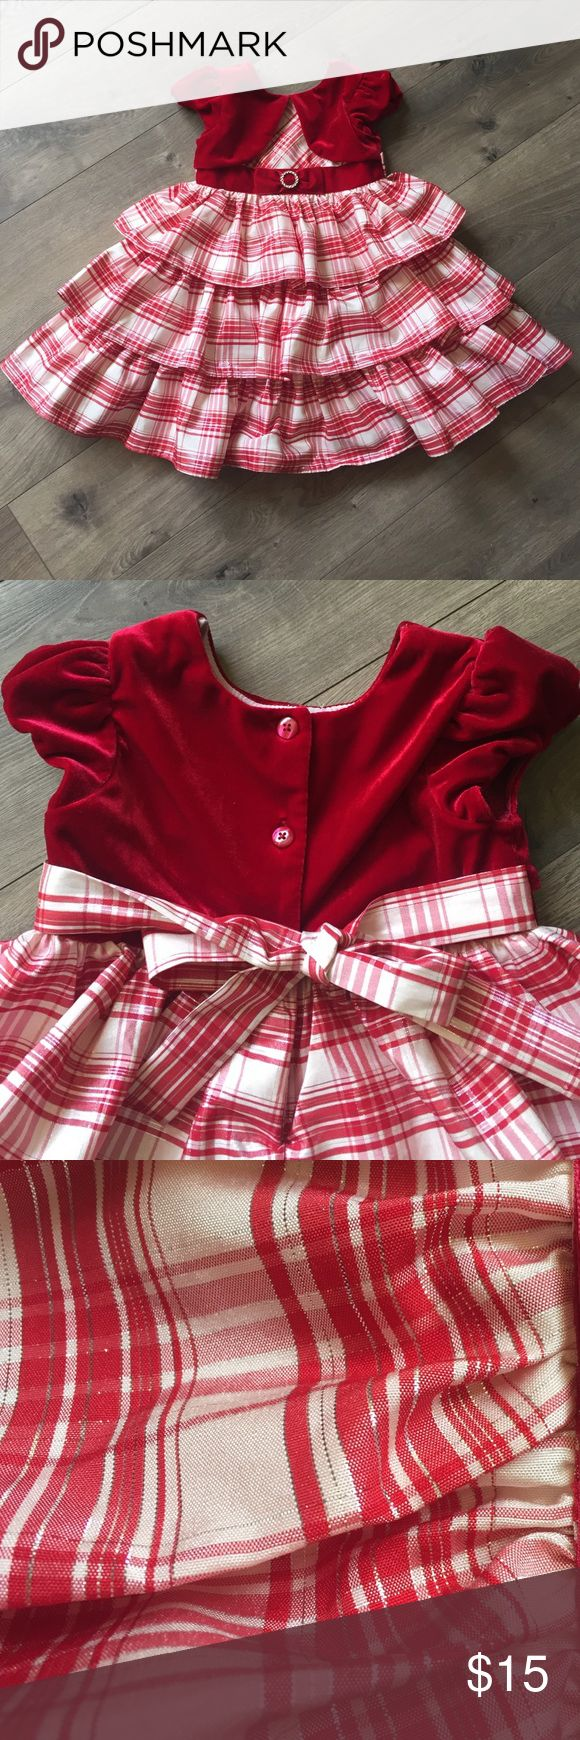 Toddler Holiday dress Very pretty Holiday dress! Silver, red and white plaid. Adorable on. Worn twice. Jona Michelle Dresses